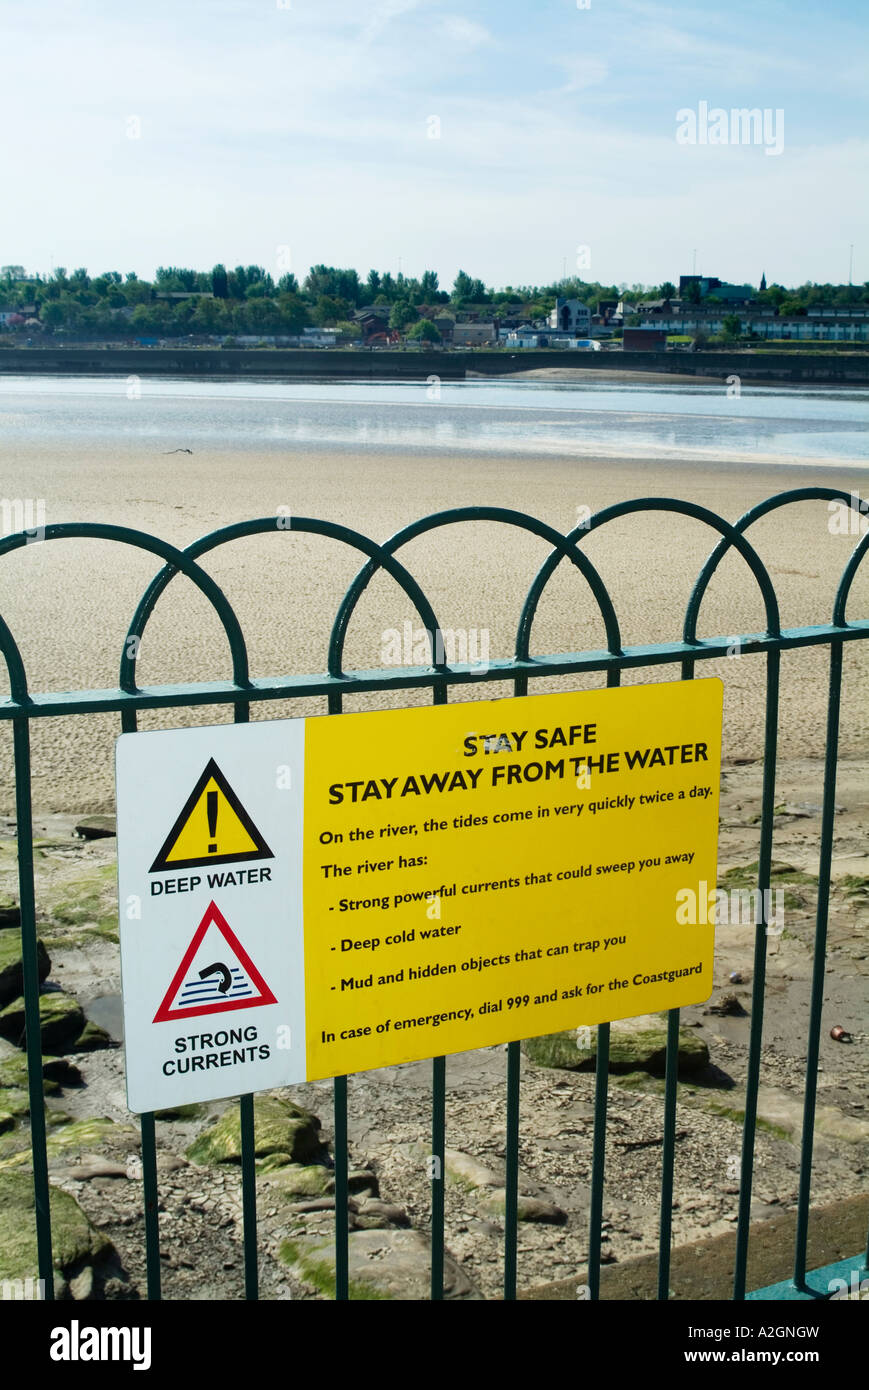 Stay safe stay away from the water sign on the banks of the River Mersey in West Bank Widnes Cheshire. UK. - Stock Image